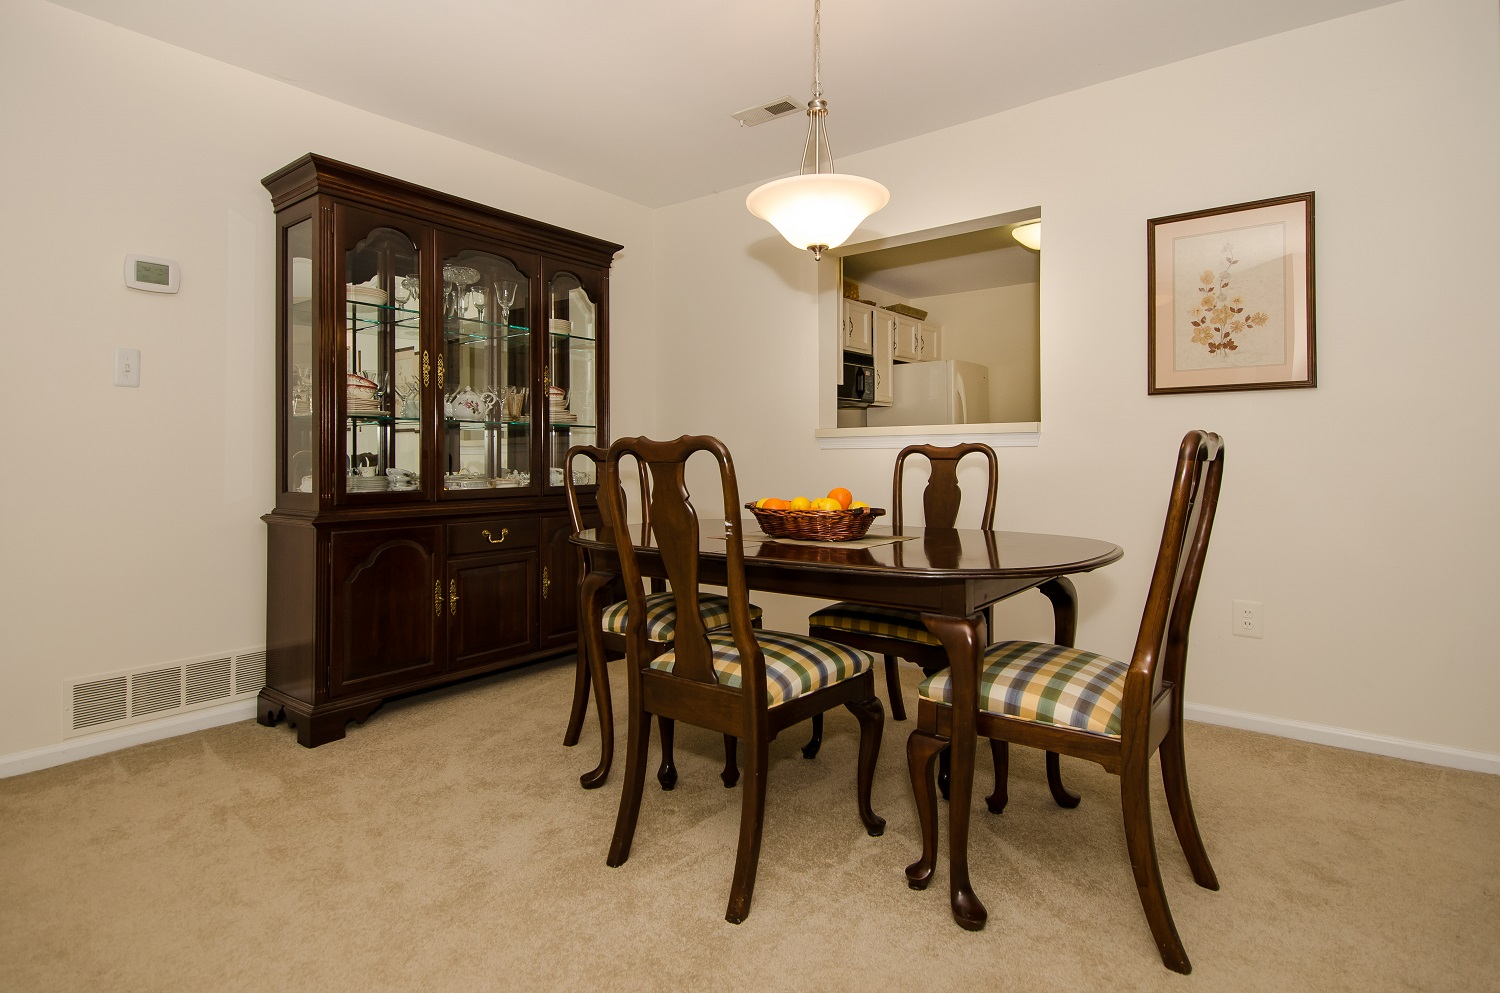 556 Cedar Hollow Dr., Yardley, PA 19067 Dining Room